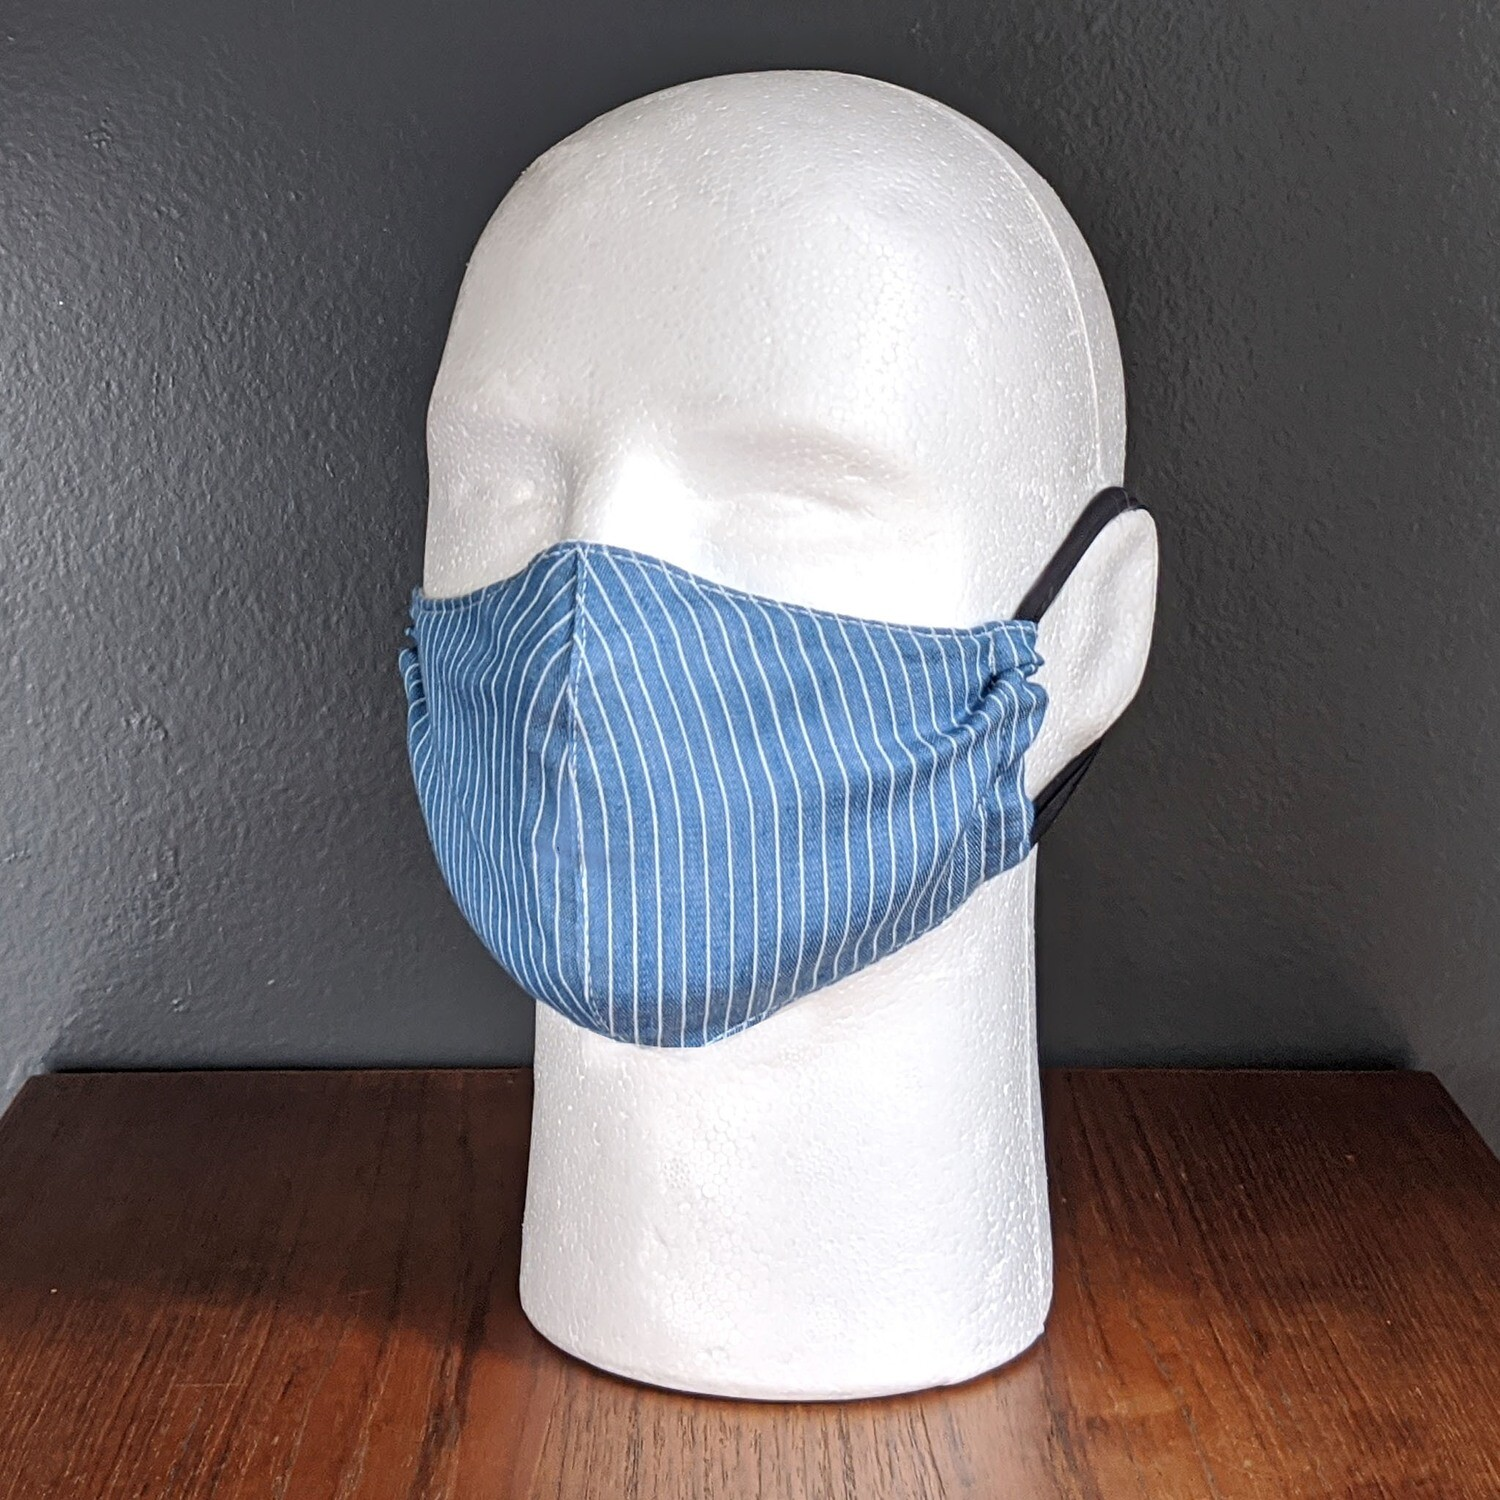 Blue Pinstripe Face Masks, Small, Unisex, Washable, Reusable, Double Layer for Smog, Pollen, Dust, Smoke. Made in USA